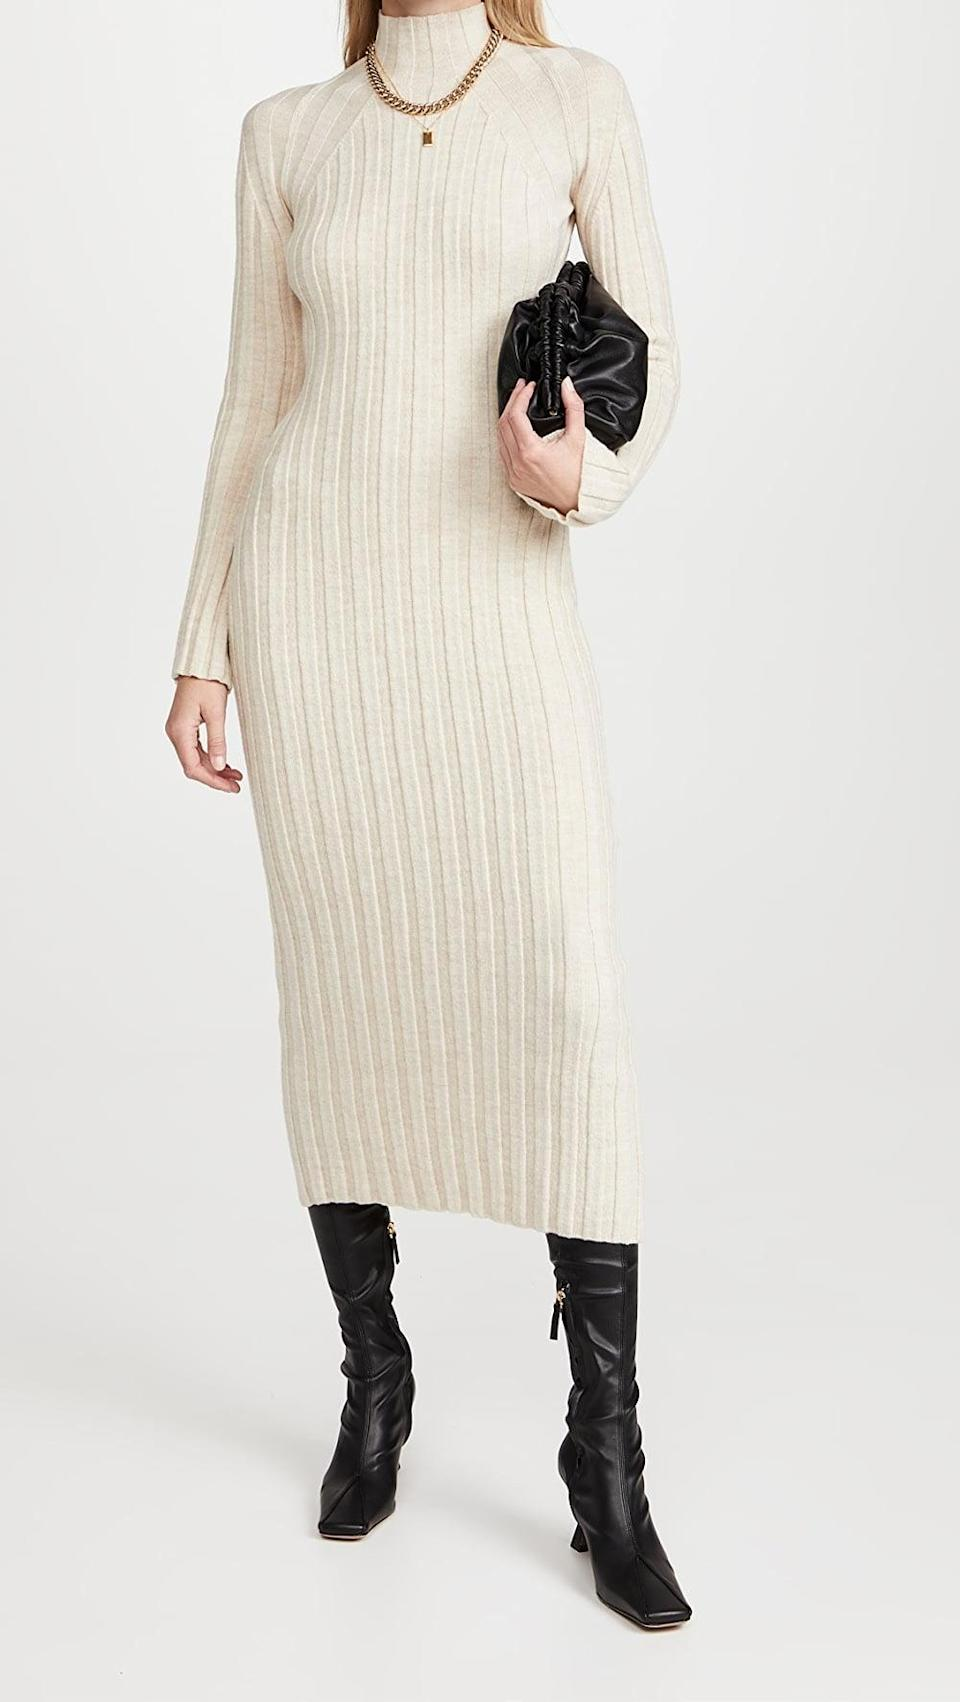 <p>This <span>ANINE BING Shawn Dress</span> ($399) appears simple, but you can accessorize it to be anything but. Just add a chain necklace and some heeled boots for a wow effect. </p>